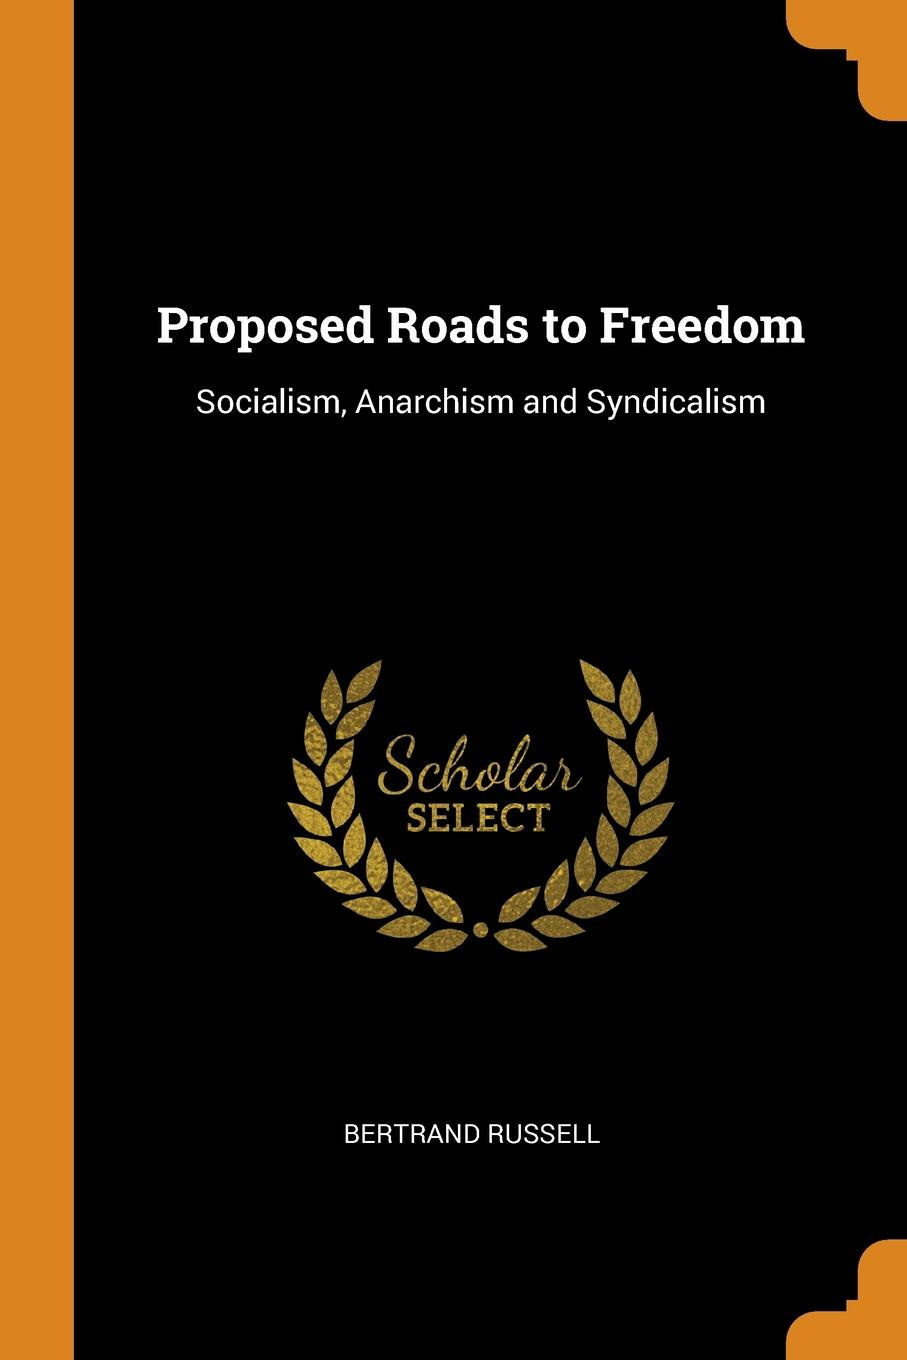 Bertrand Russell Proposed Roads to Freedom. Socialism, Anarchism and Syndicalism